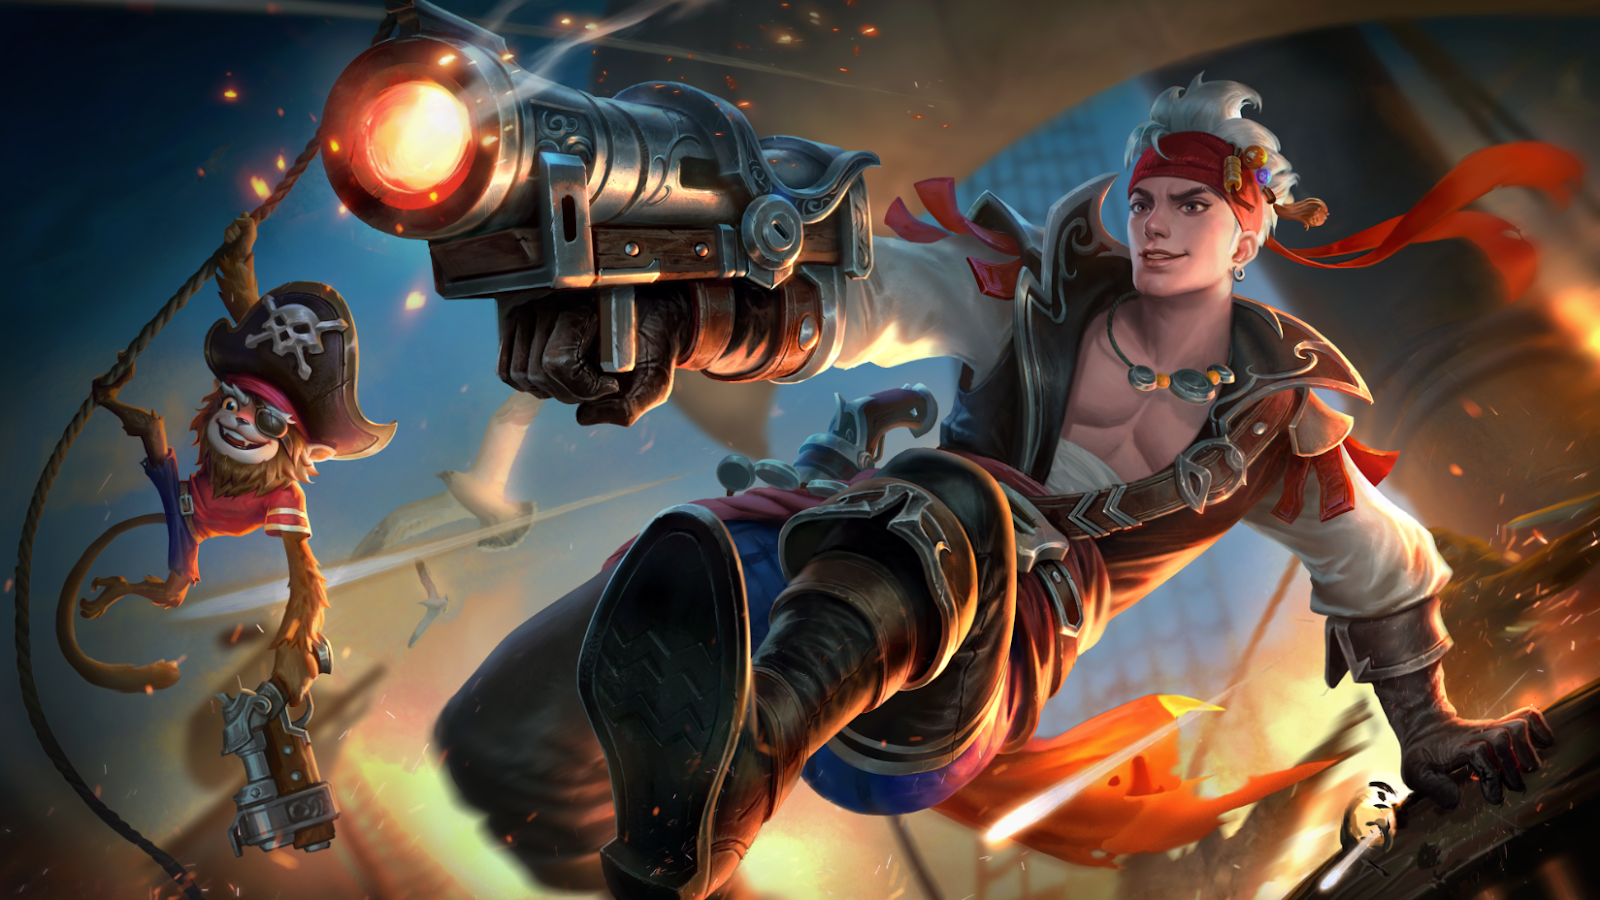 Wallpaper Mobile Legends Claude Starlight Skin November 2018 - Plunderous Pirate